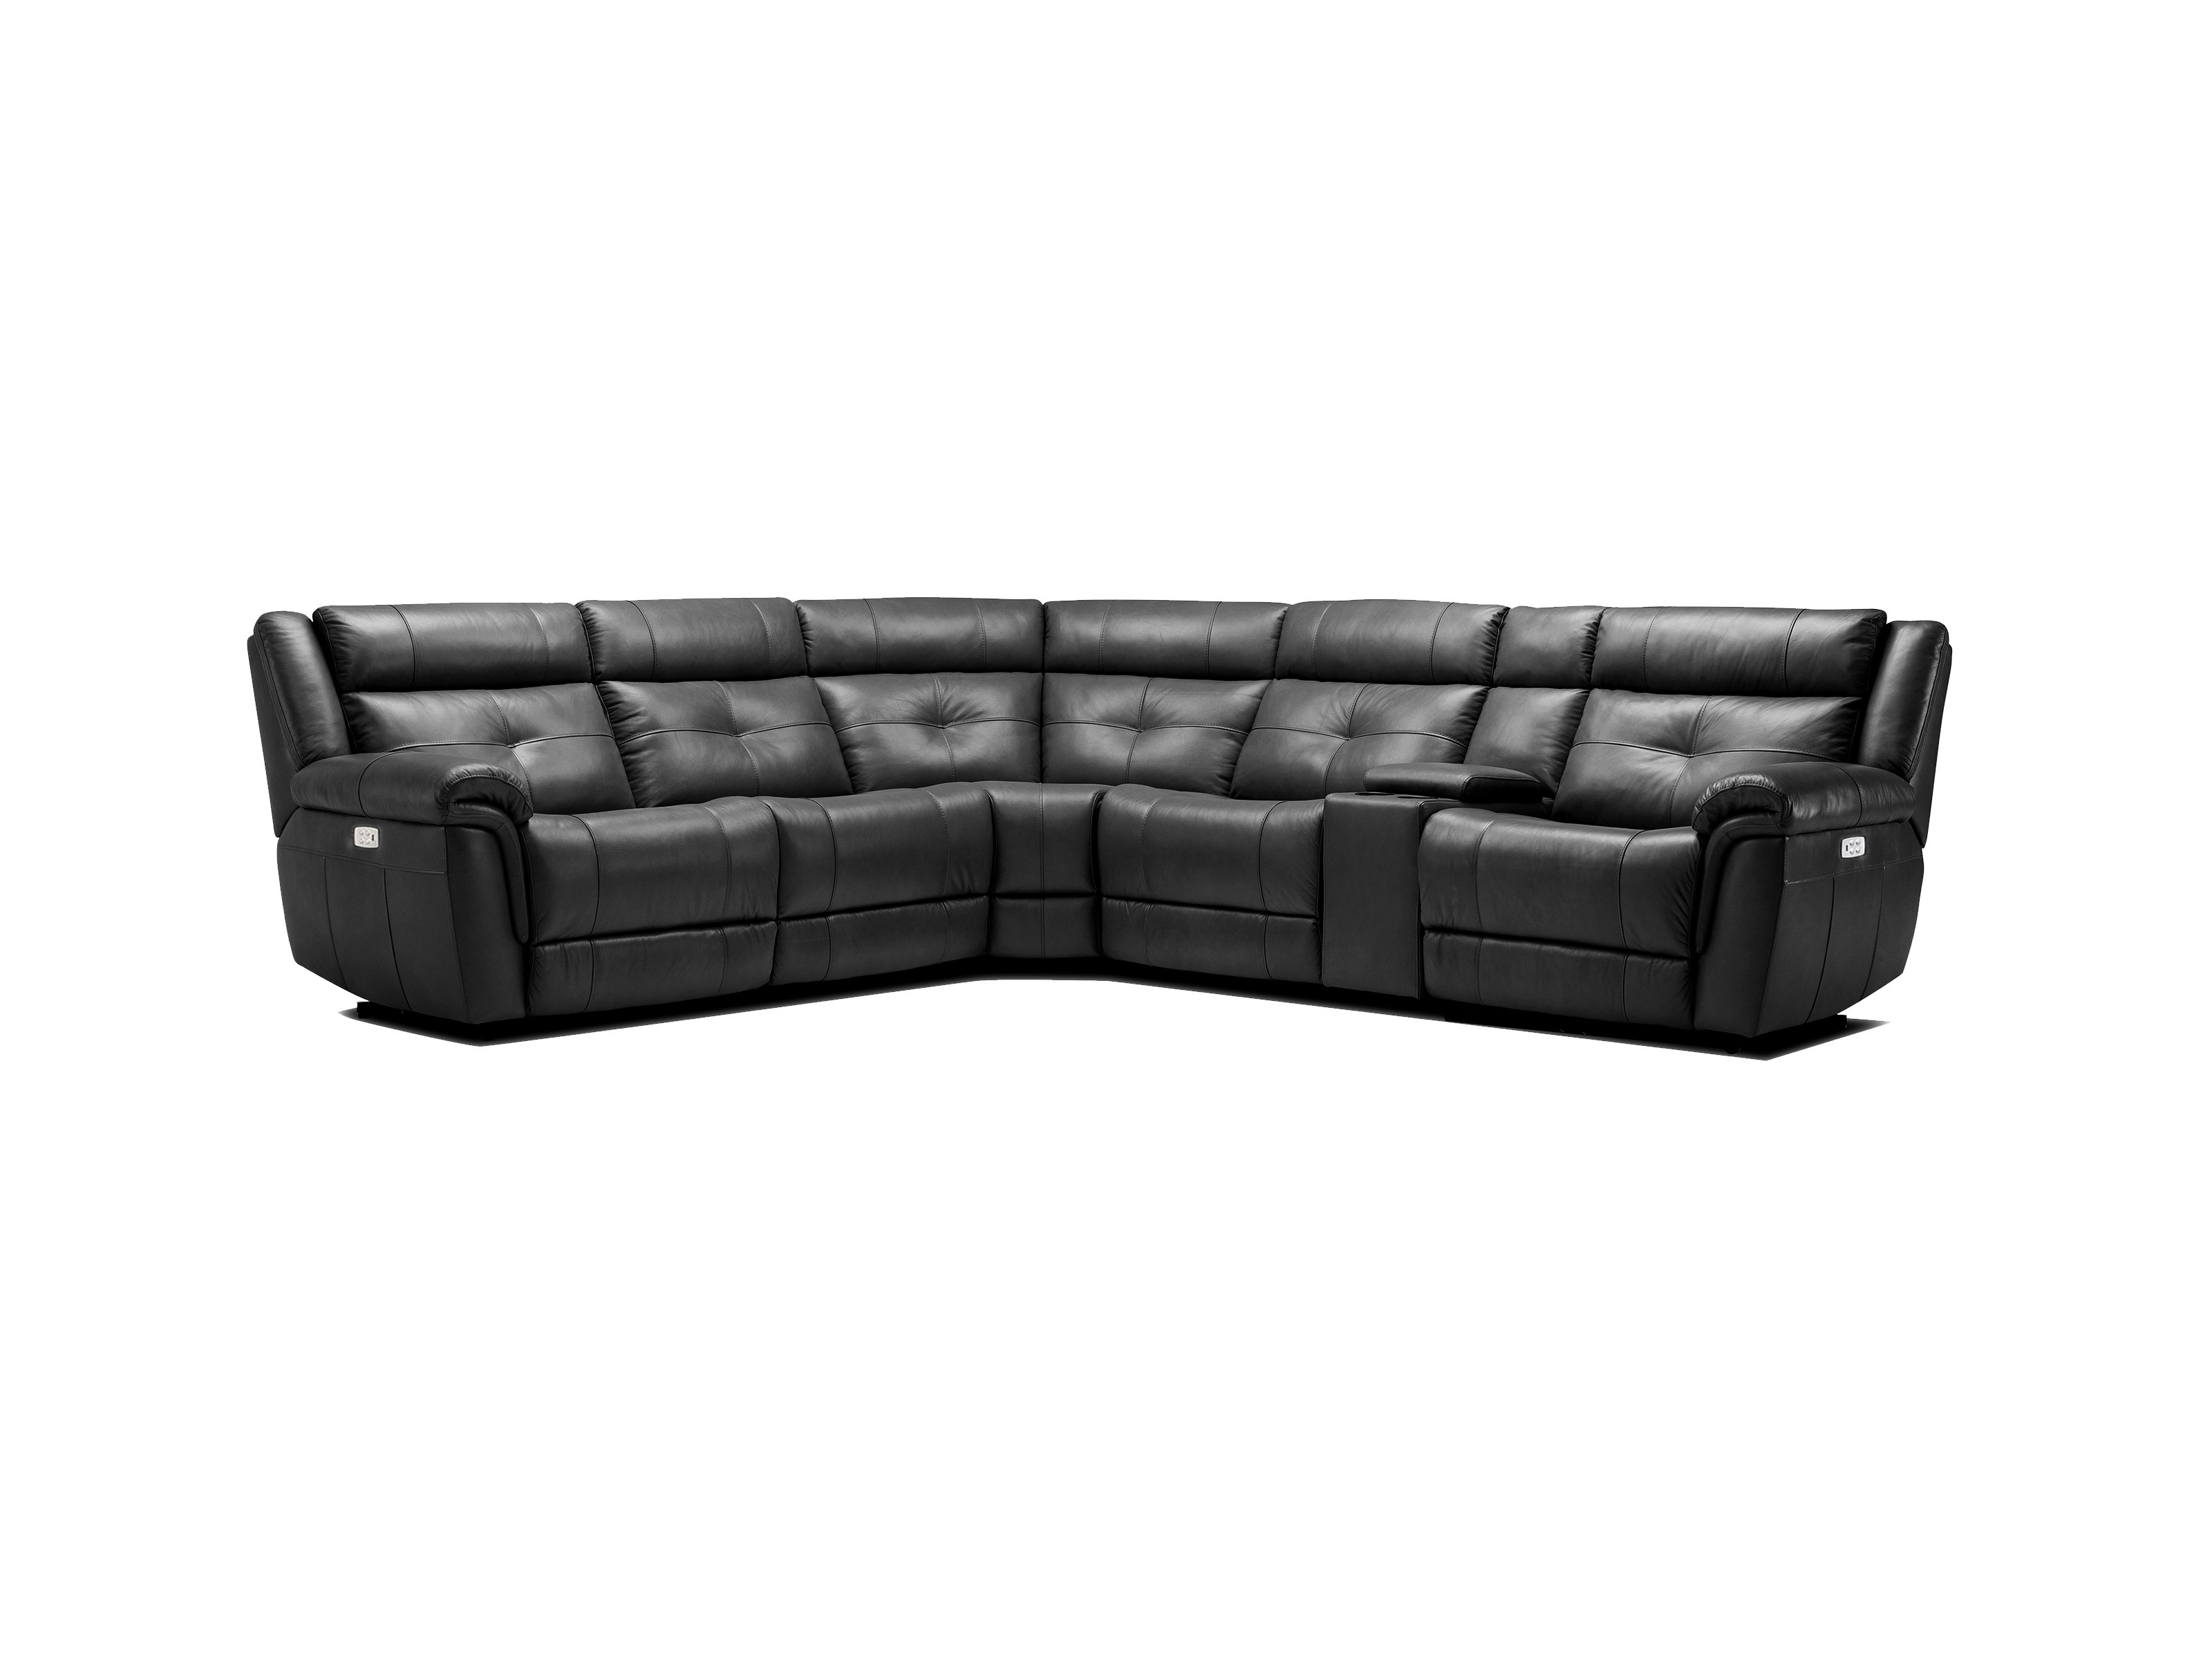 Dayton Ohio Sectional Sofas For Popular Sectional Sofas, Leather Sectional, Couch (Gallery 20 of 20)